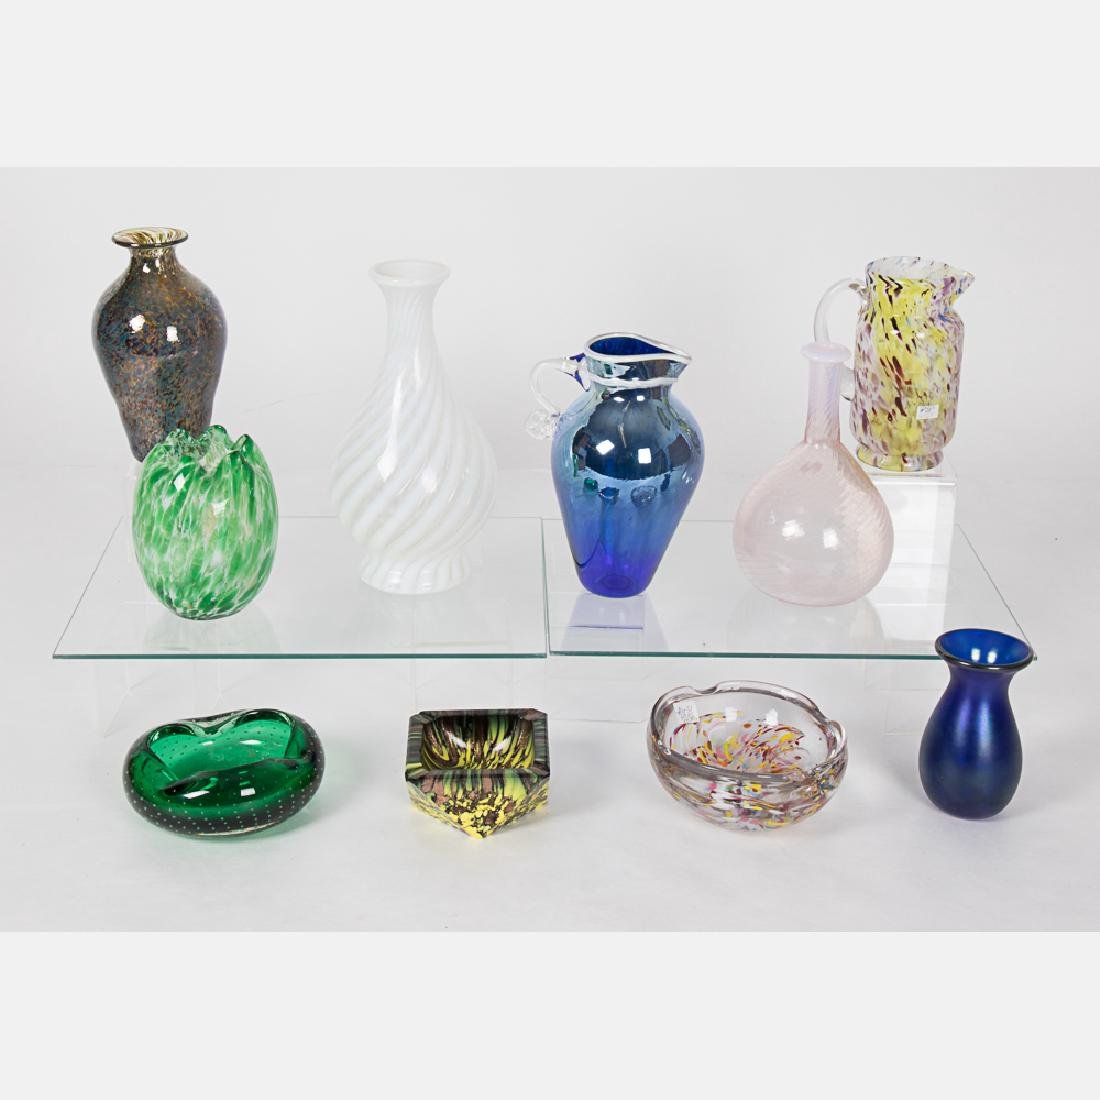 A Collection of Colored Blown Glass Decorative Items by